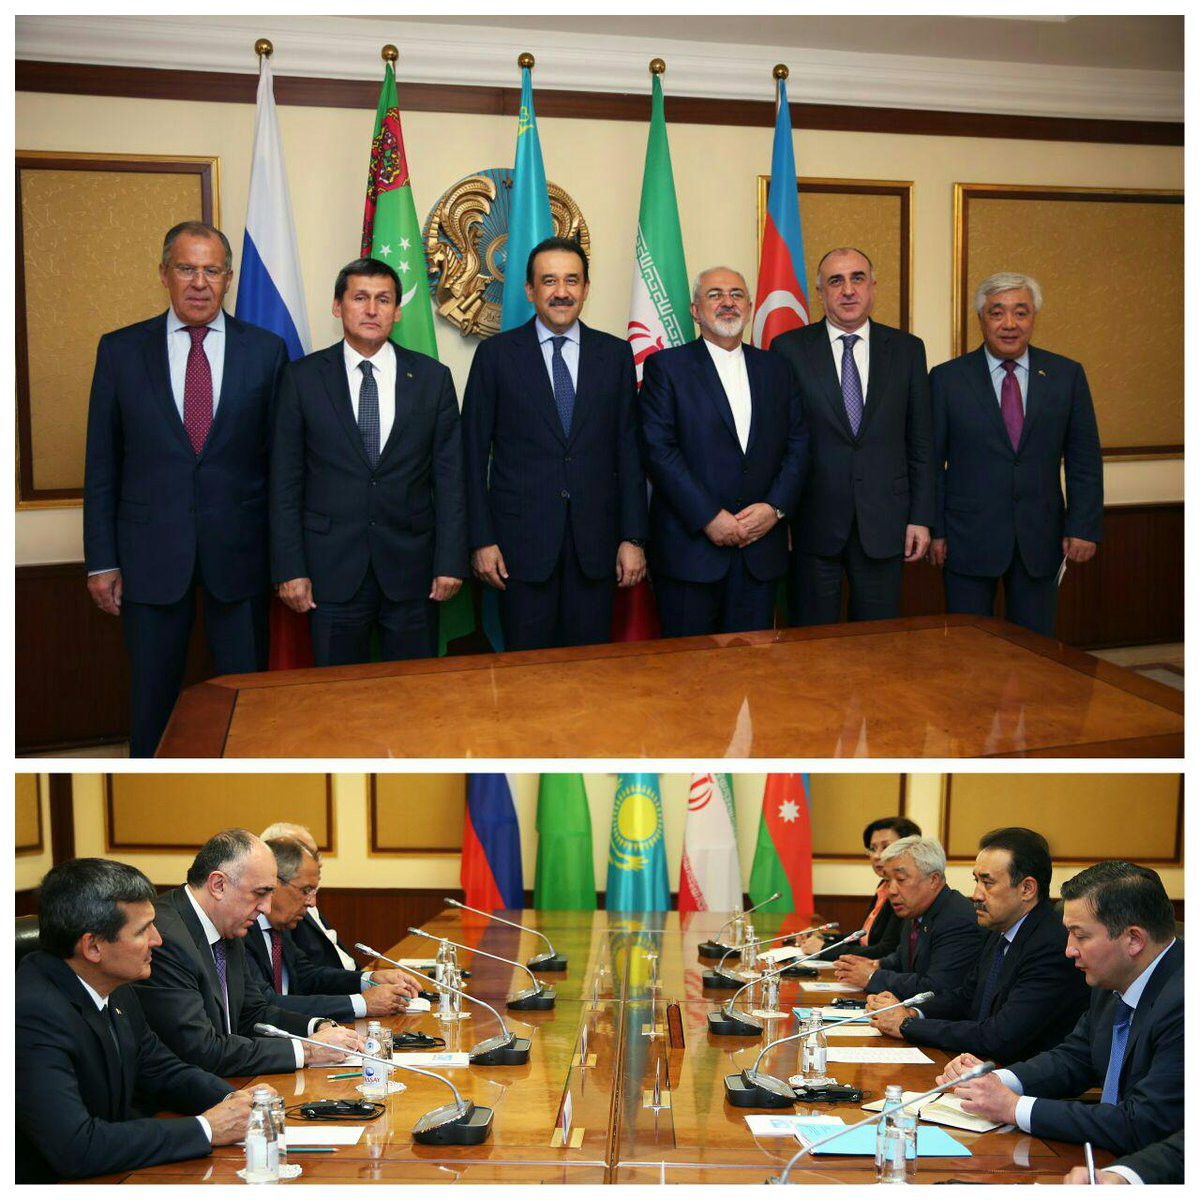 The Caspian Sea should and will remain a sea of peace, cooperation and friendship for all littoral states. https://t.co/cO2CO9DFRP